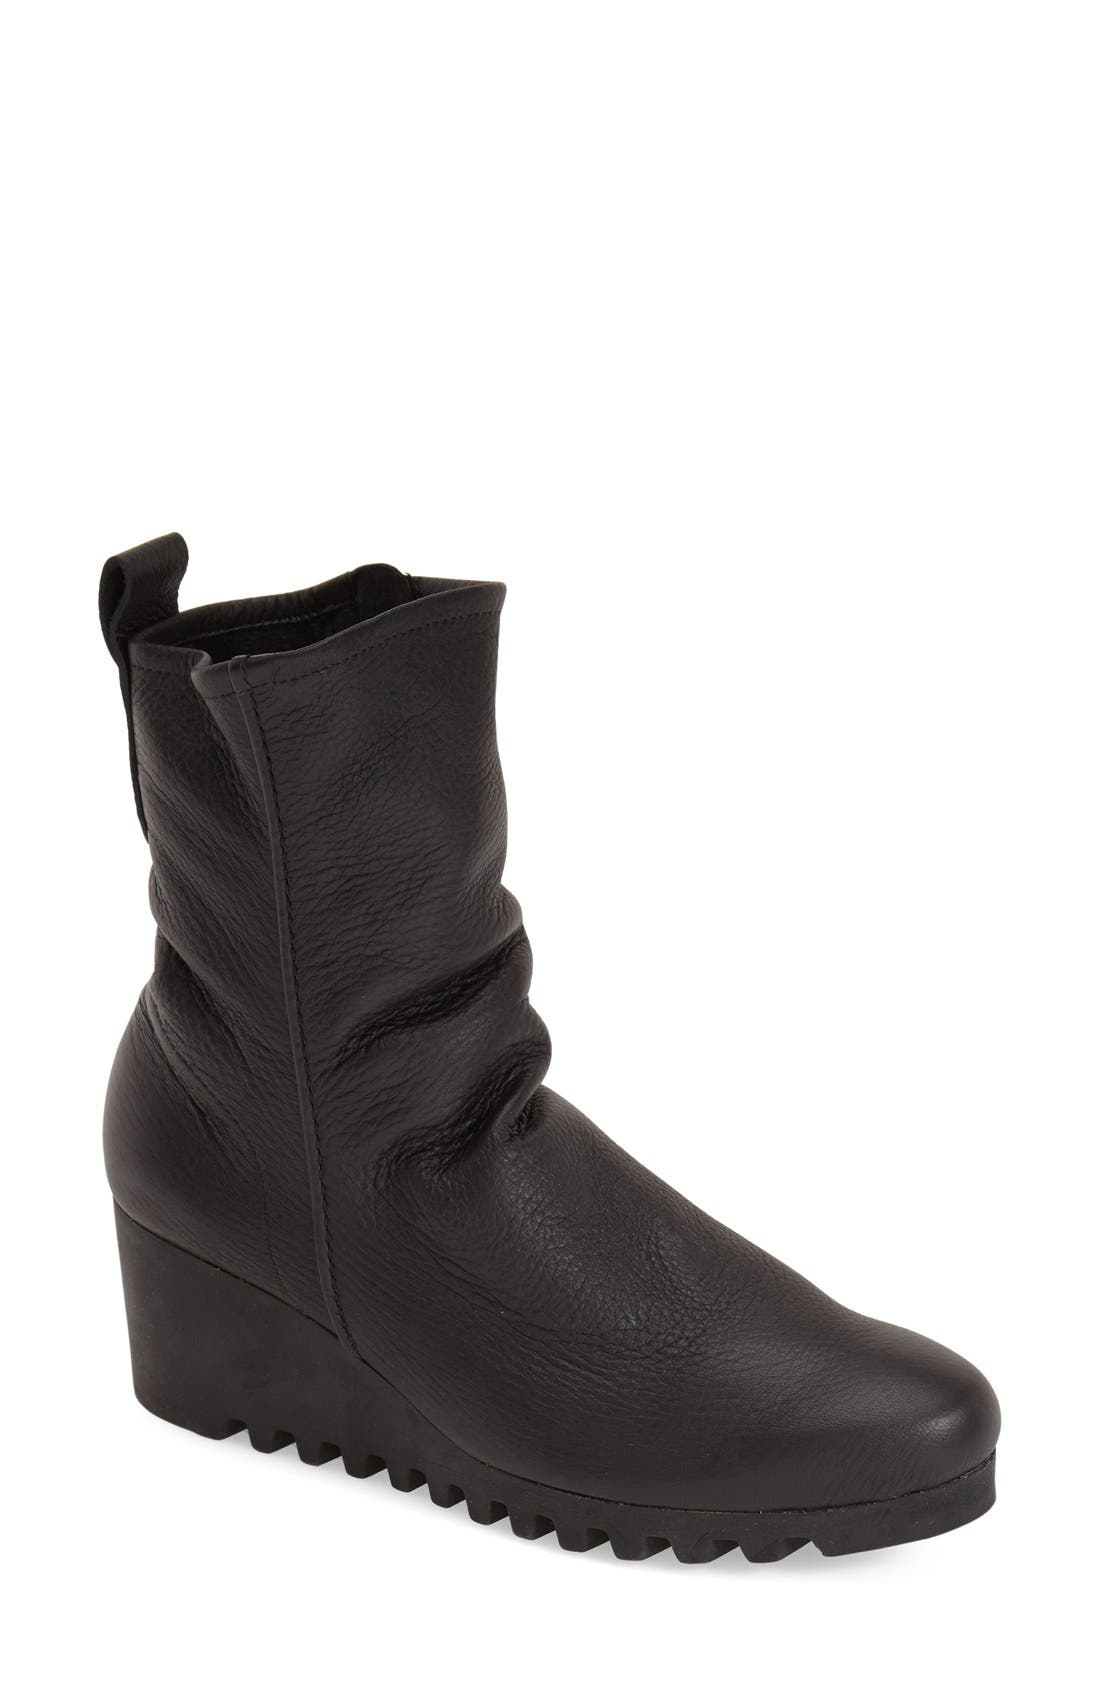 'Larazo' Bootie,                             Main thumbnail 1, color,                             BLACK LEATHER